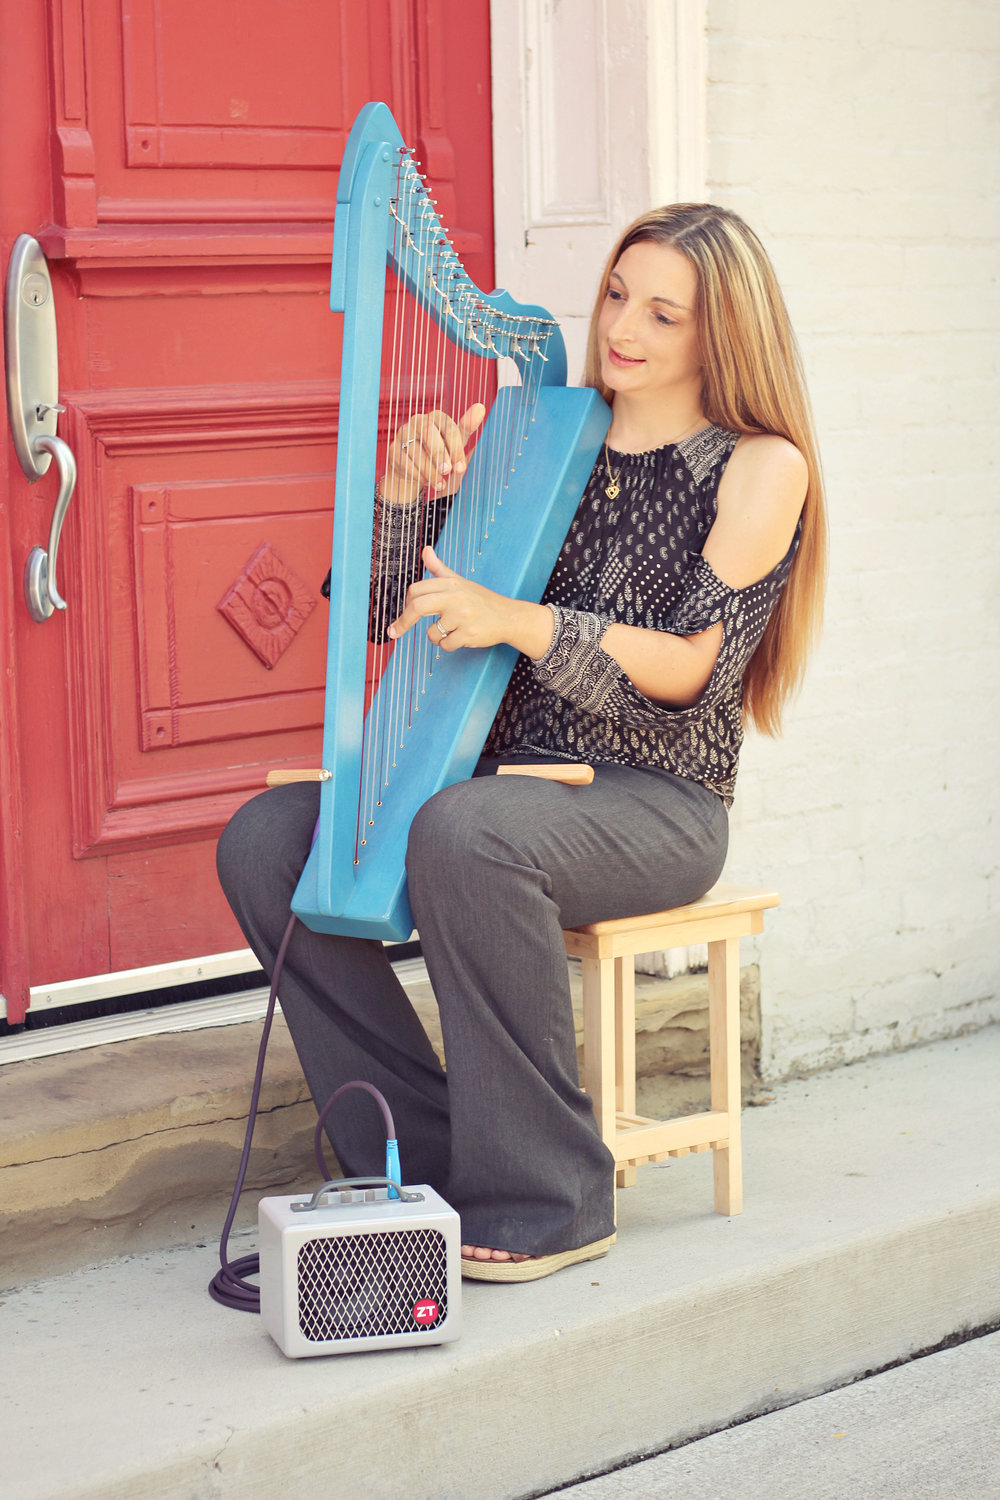 Ashley uses the Harpsicle® Harp Stick to make it easier to hold this harp at the correct height.